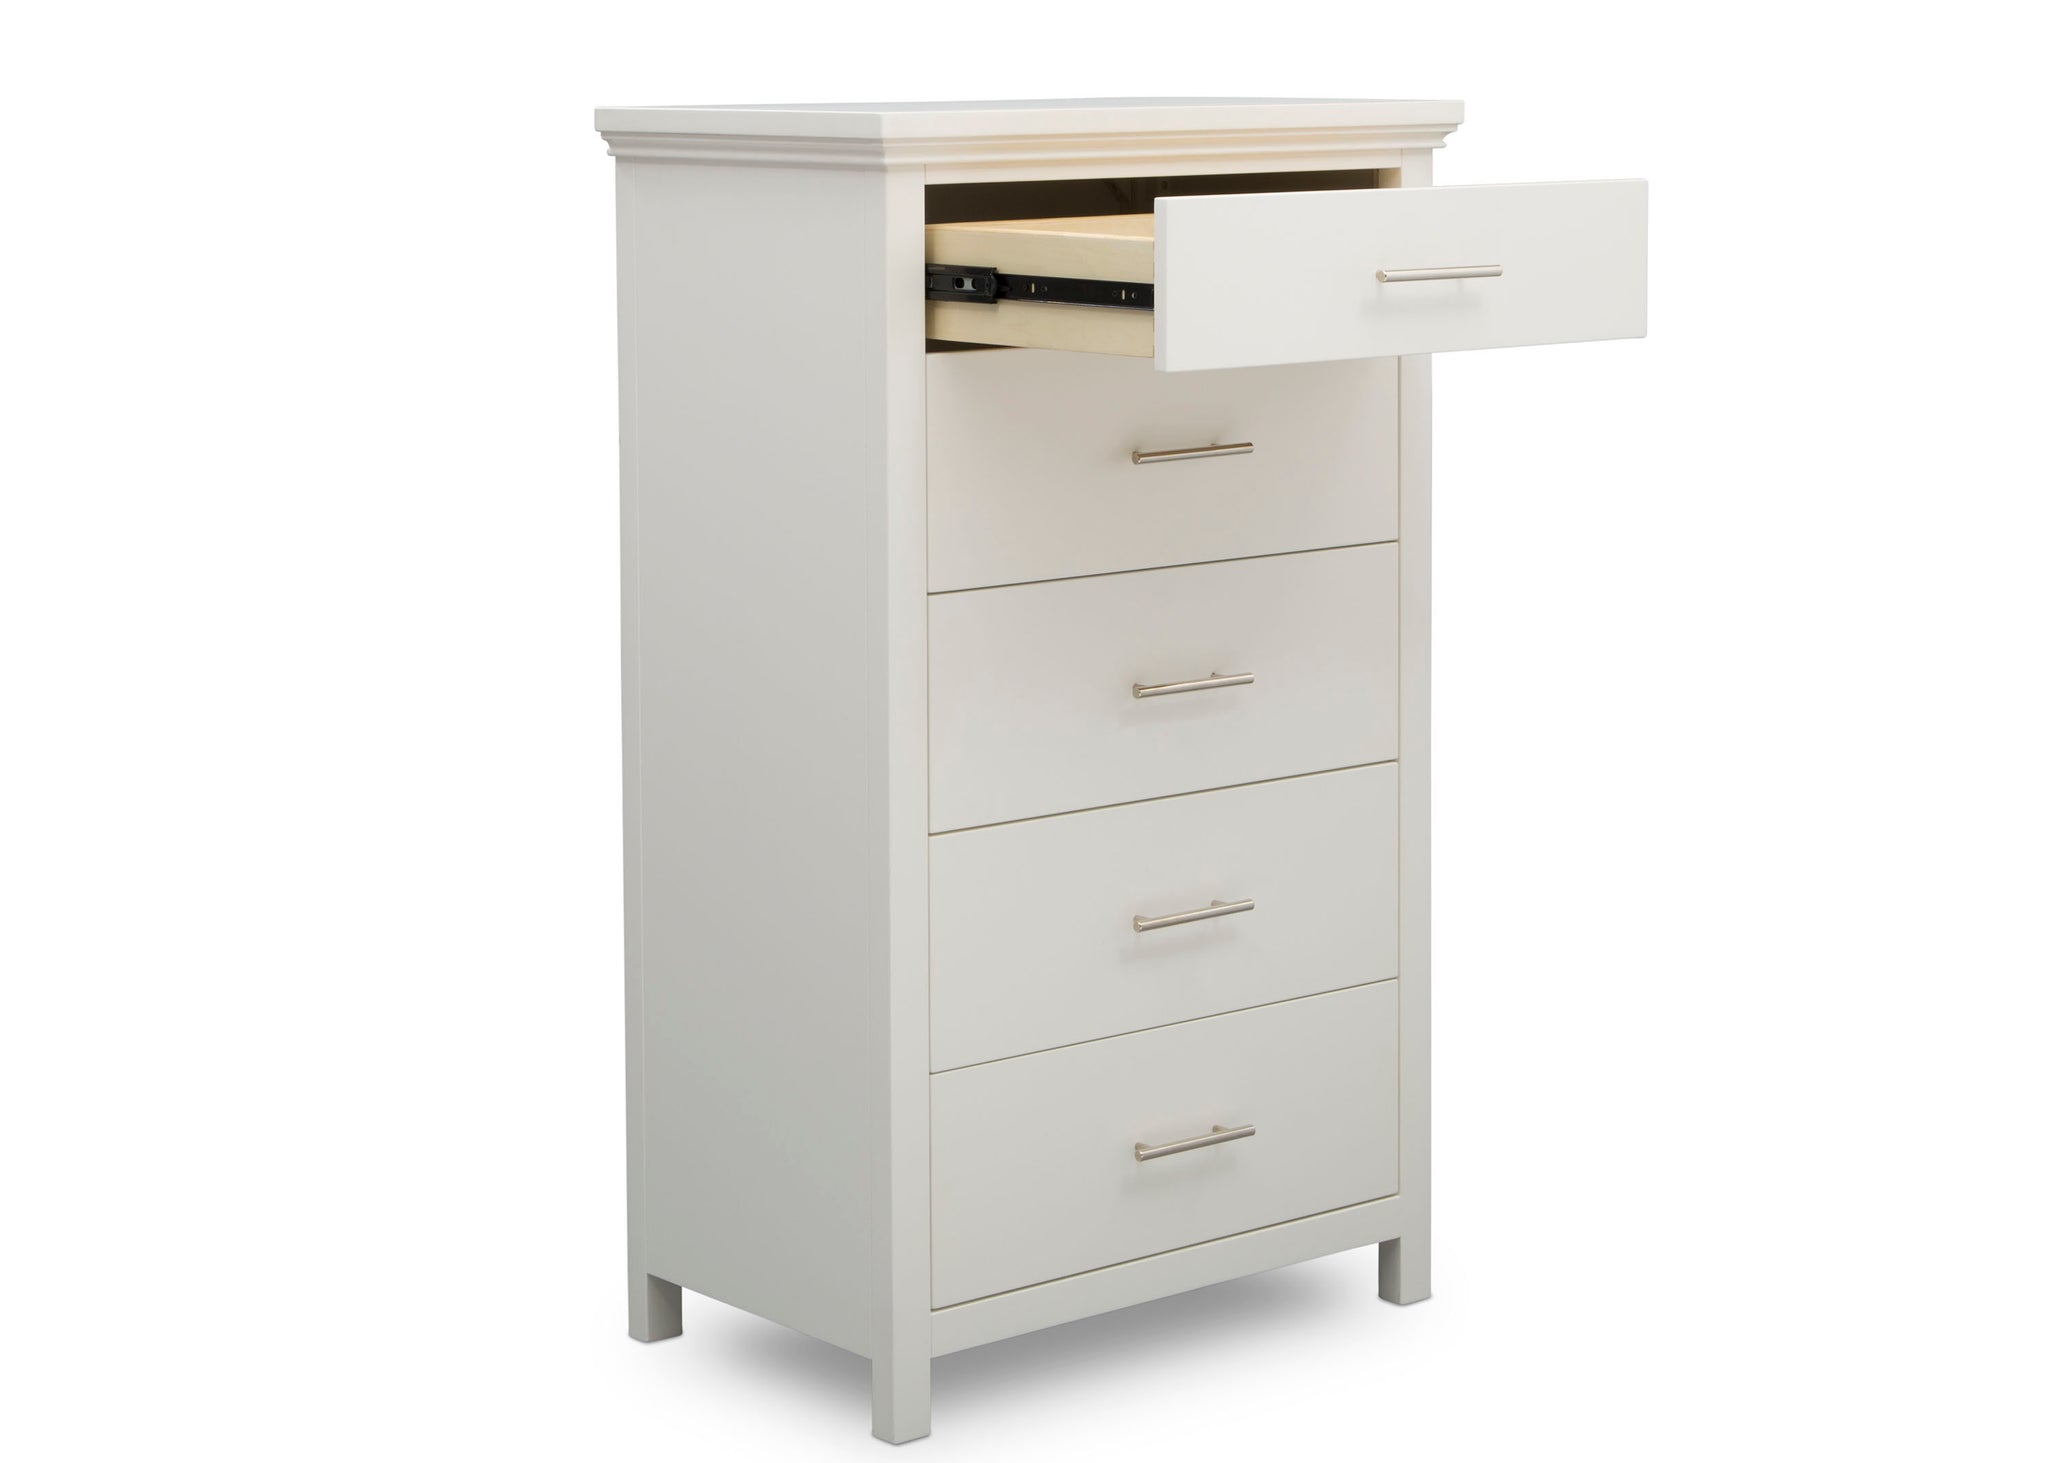 Simmons Kids Bianca White (130) Avery 5 Drawer Chest, Right Silo Open Drawer View